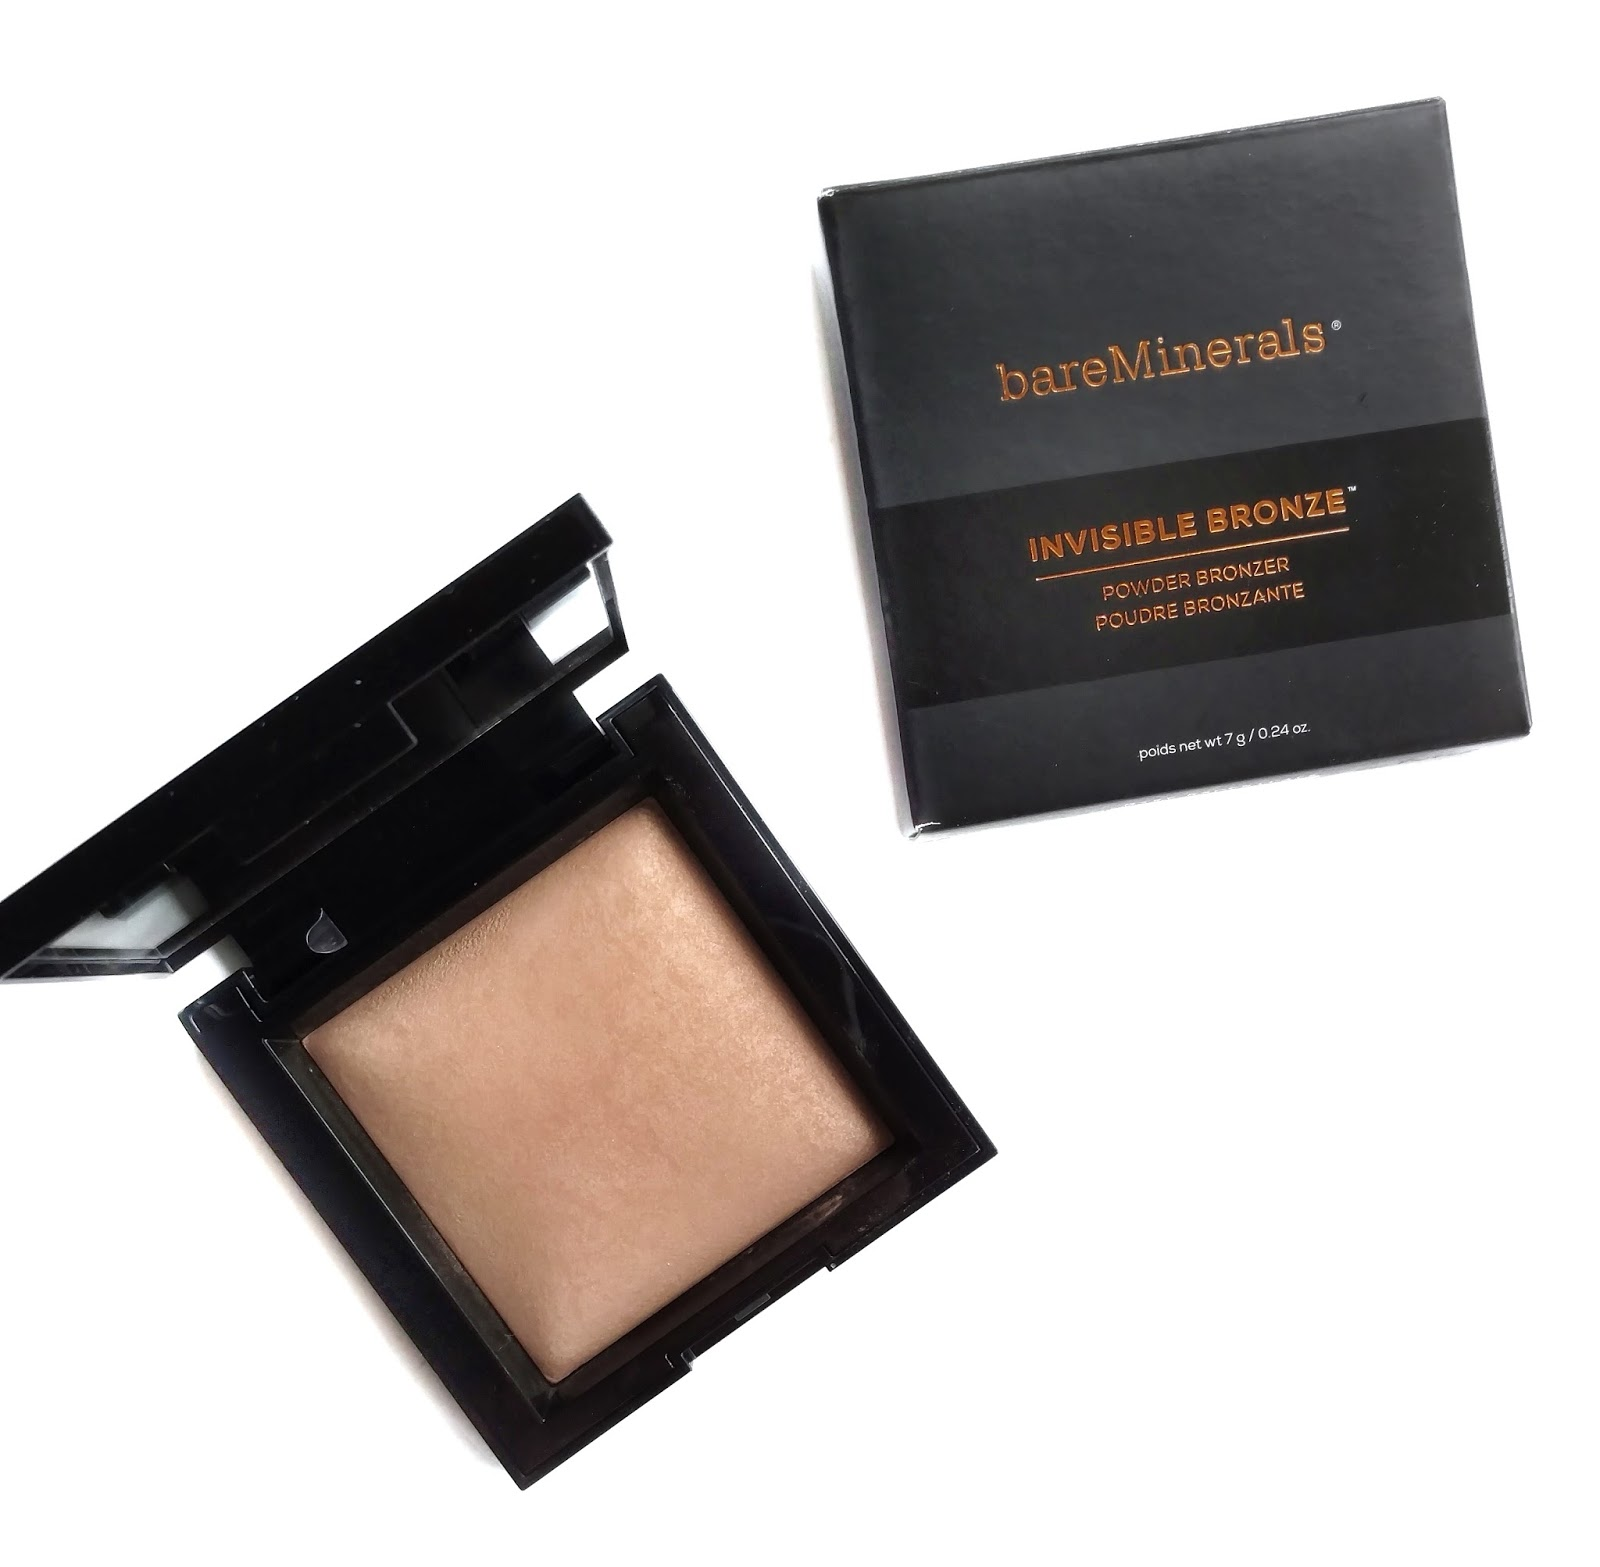 bareminerals invisible bronze review